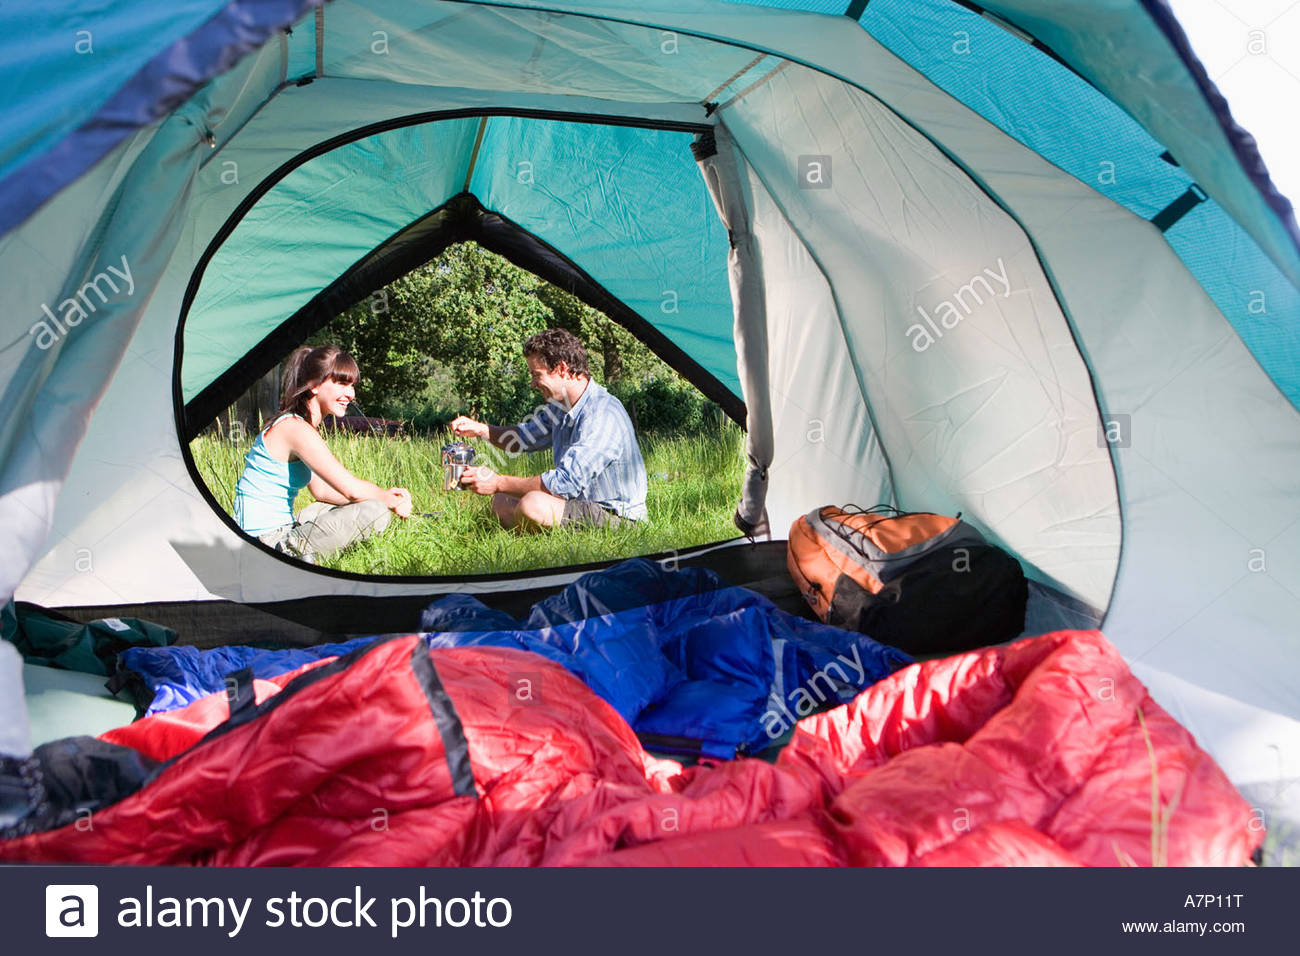 Tent interior view of couple sitting outside on grass pouring water from hot kettle - Stock Image